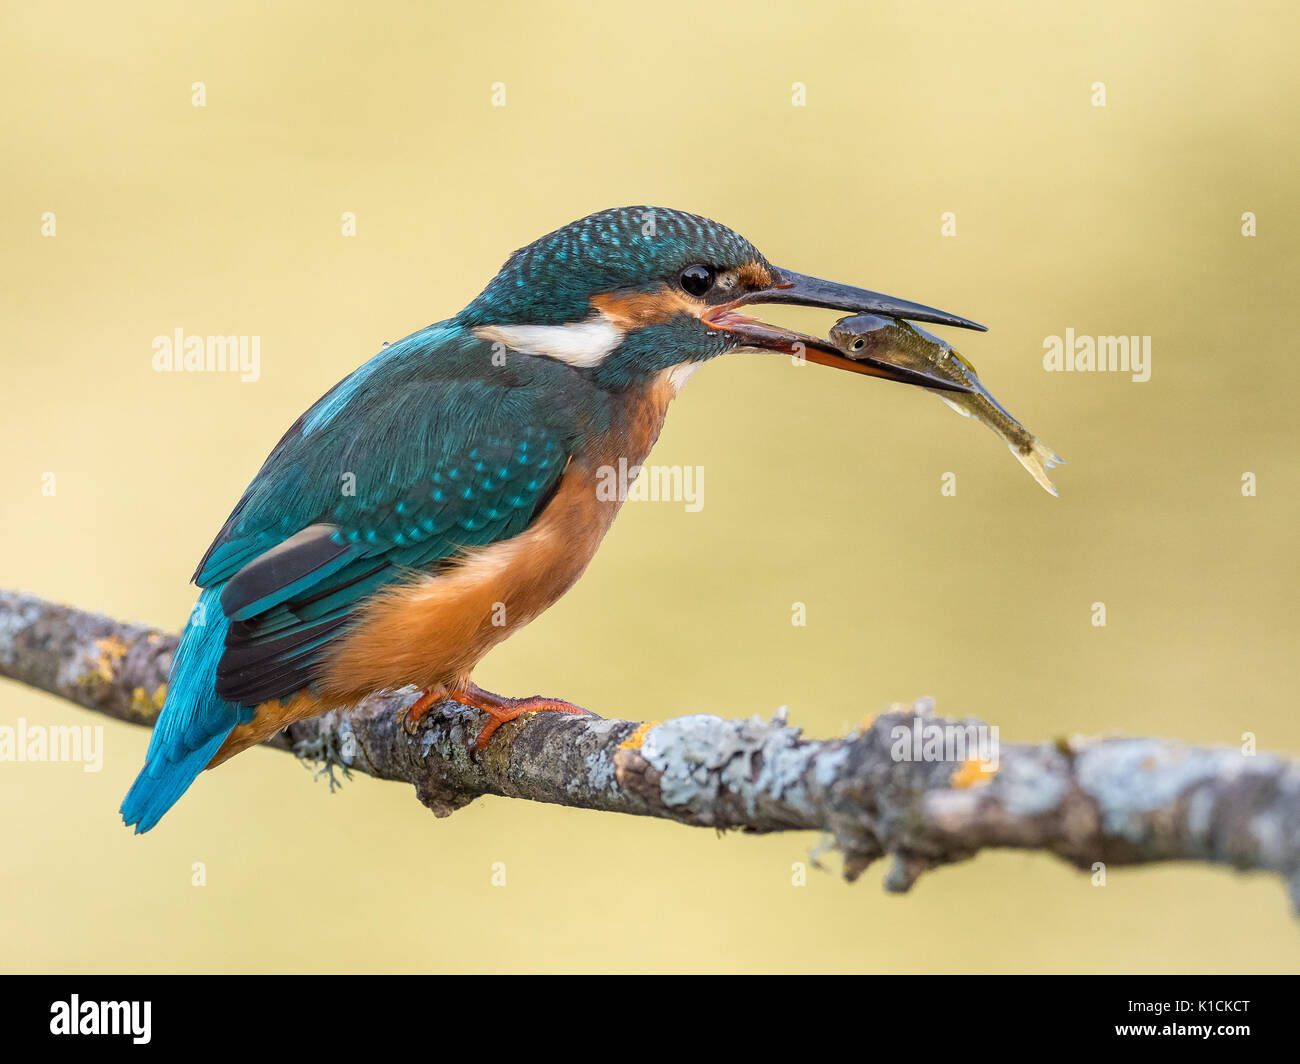 Female of kingfisher bird (Alcedo atthis) eating a fish - Stock Image